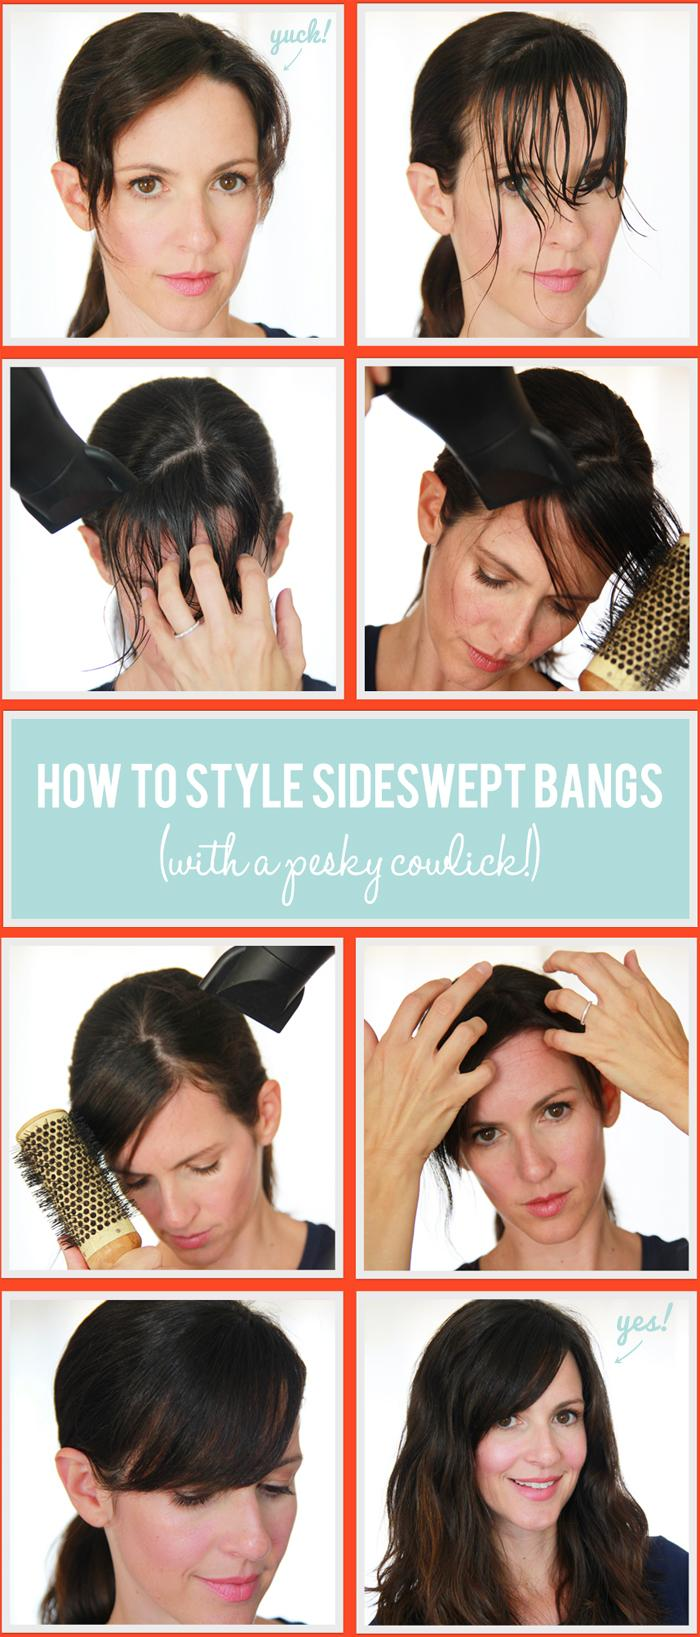 Side Swept Bangs With Cowlick Hairstyles How To